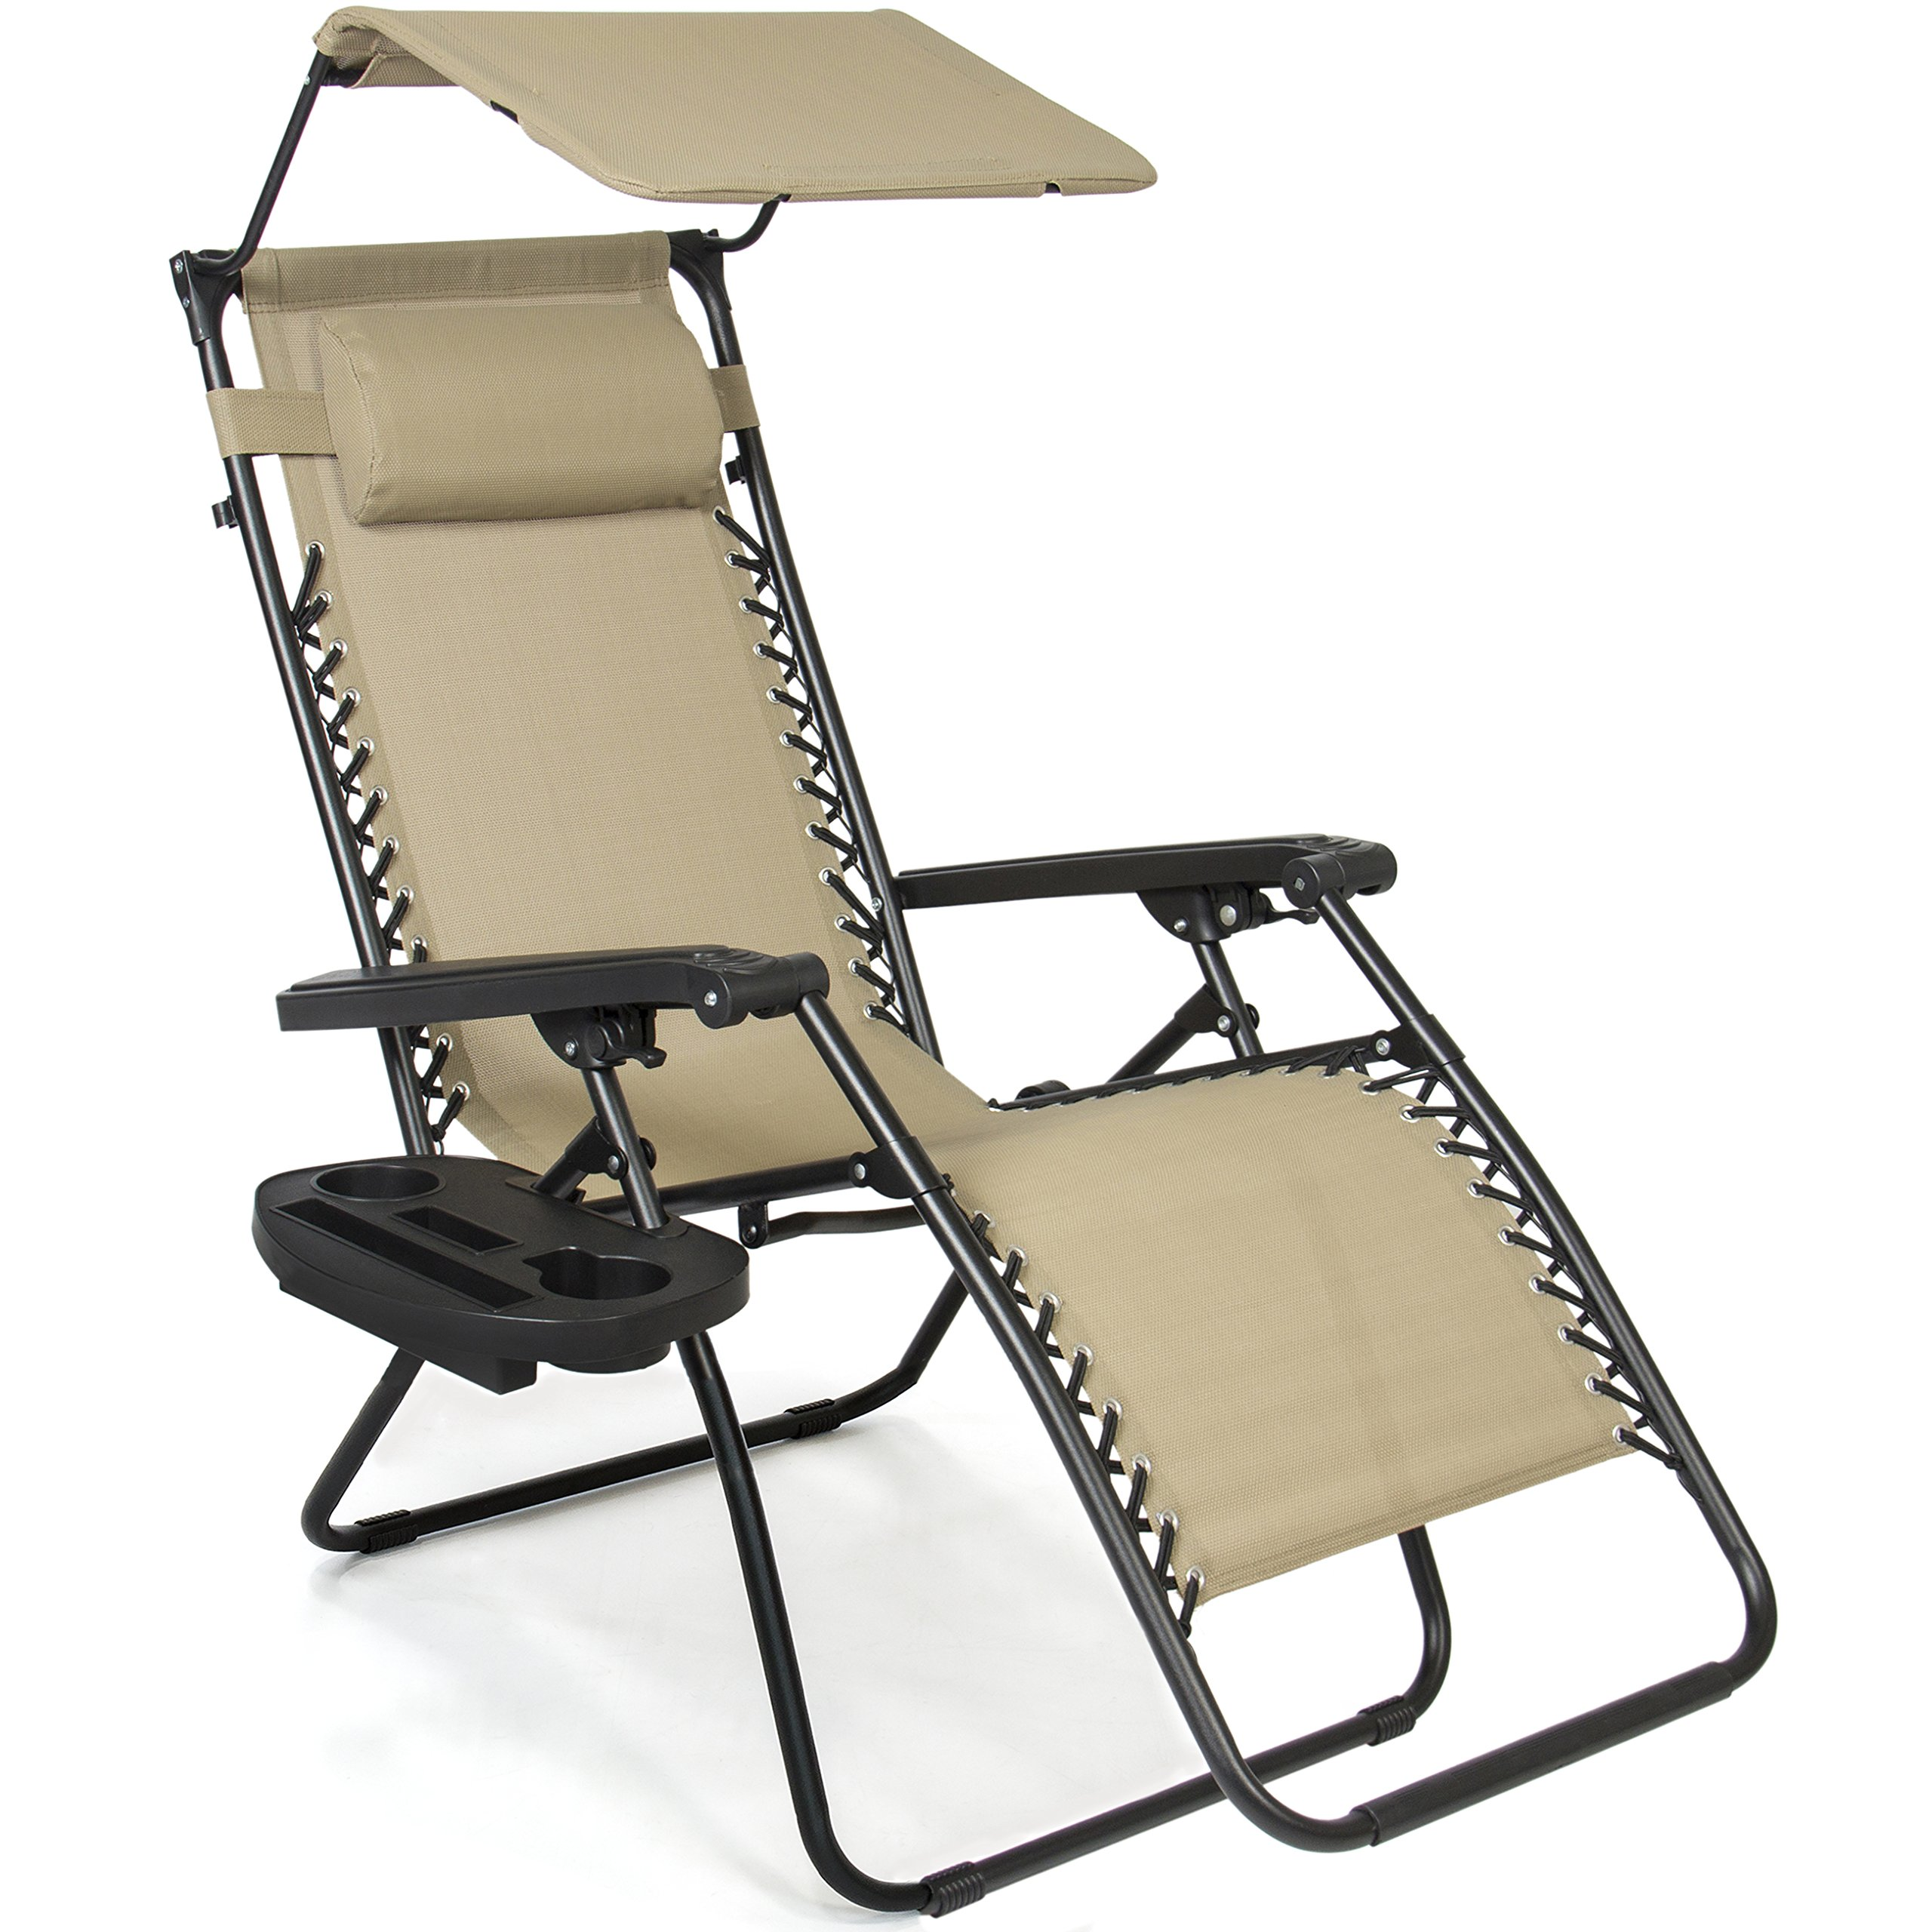 Best Choice Products Folding Zero Gravity Recliner Lounge Chair w/ Adjustable Canopy Shade, Cup Holder Accessory Tray, Headrest Pillow - Beige by Best Choice Products